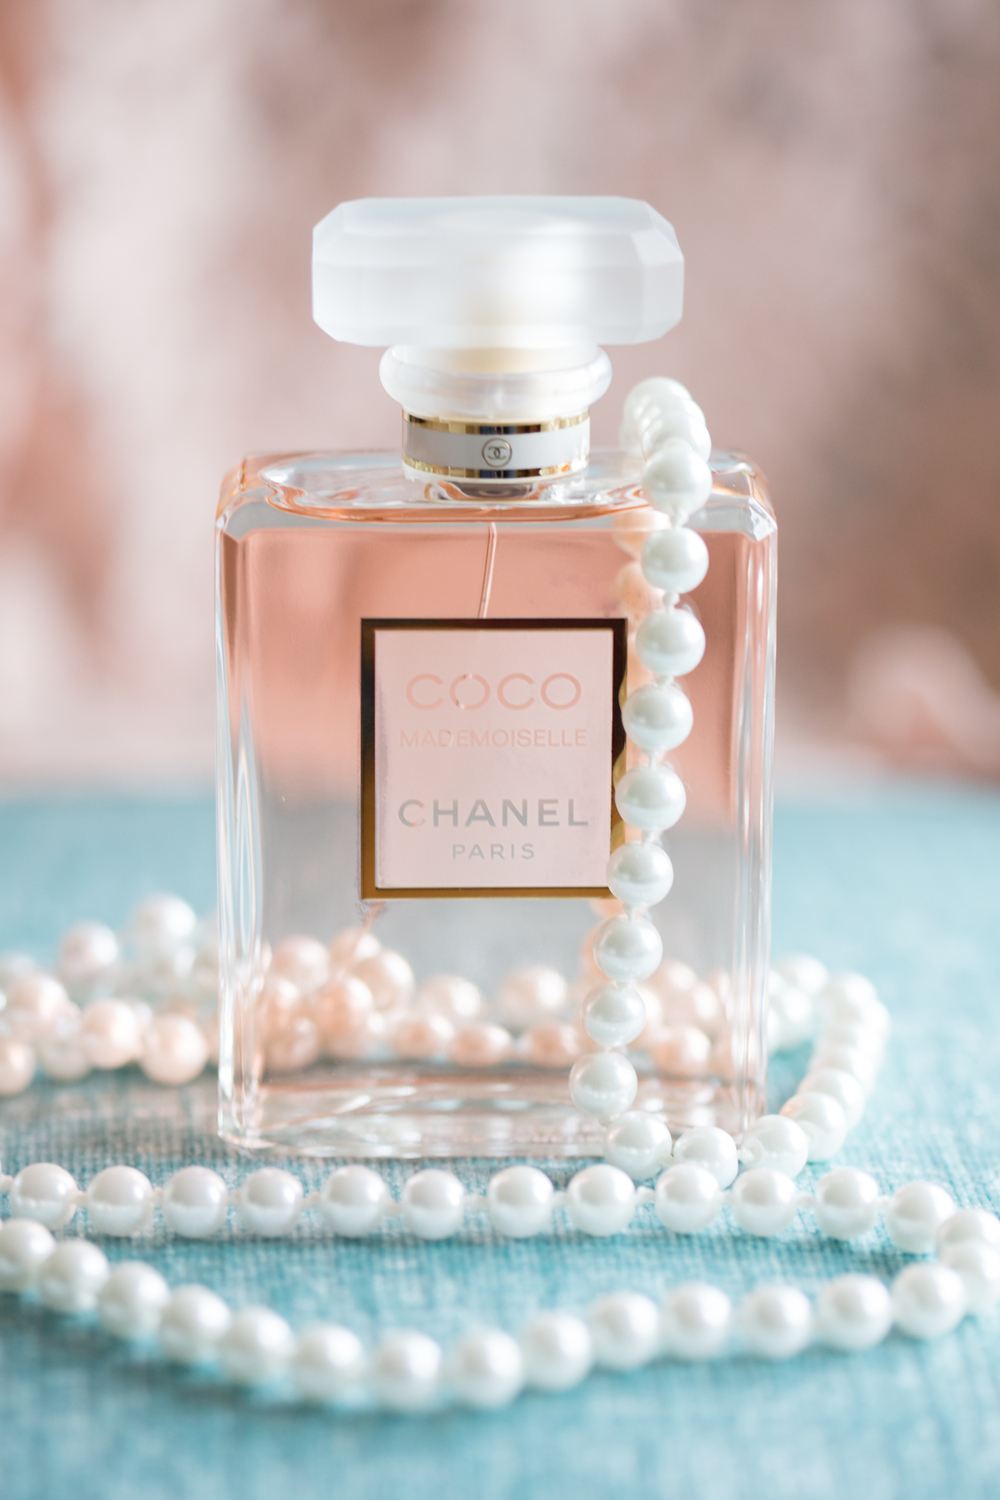 A Few of My Favorite Things | Chanel Coco Mademoiselle Perfume | Shaina Lee Photography | CT, NYC, Hawaii + Destination Wedding + Engagement Photographer | Wedding Planning | Wedding + Bridal Perfume